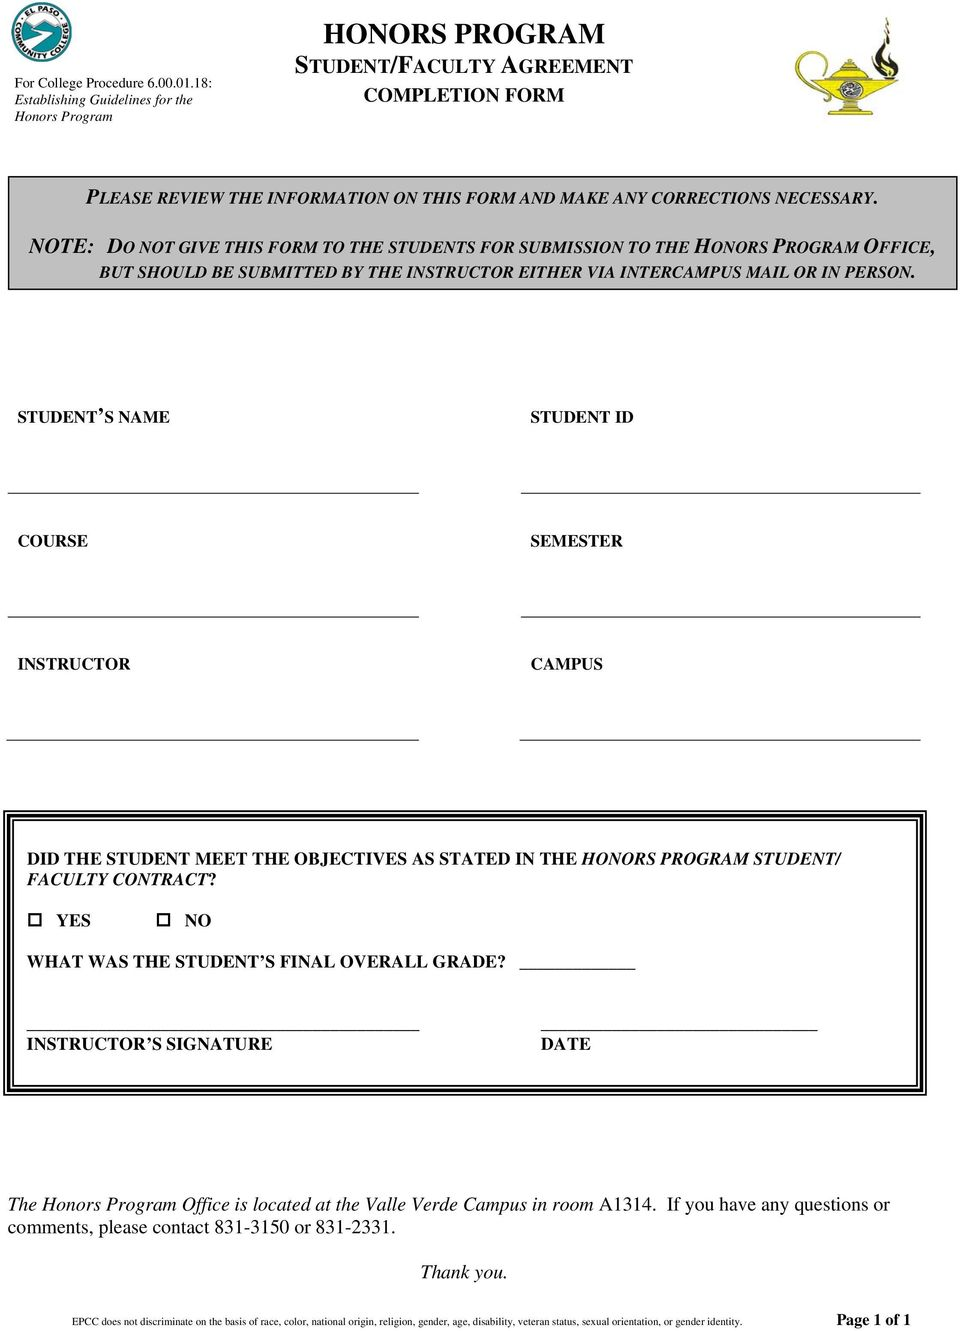 NOTE: DO NOT GIVE THIS FORM TO THE STUDENTS FOR SUBMISSION TO THE HONORS PROGRAM OFFICE, BUT SHOULD BE SUBMITTED BY THE INSTRUCTOR EITHER VIA INTERCAMPUS MAIL OR IN PERSON.